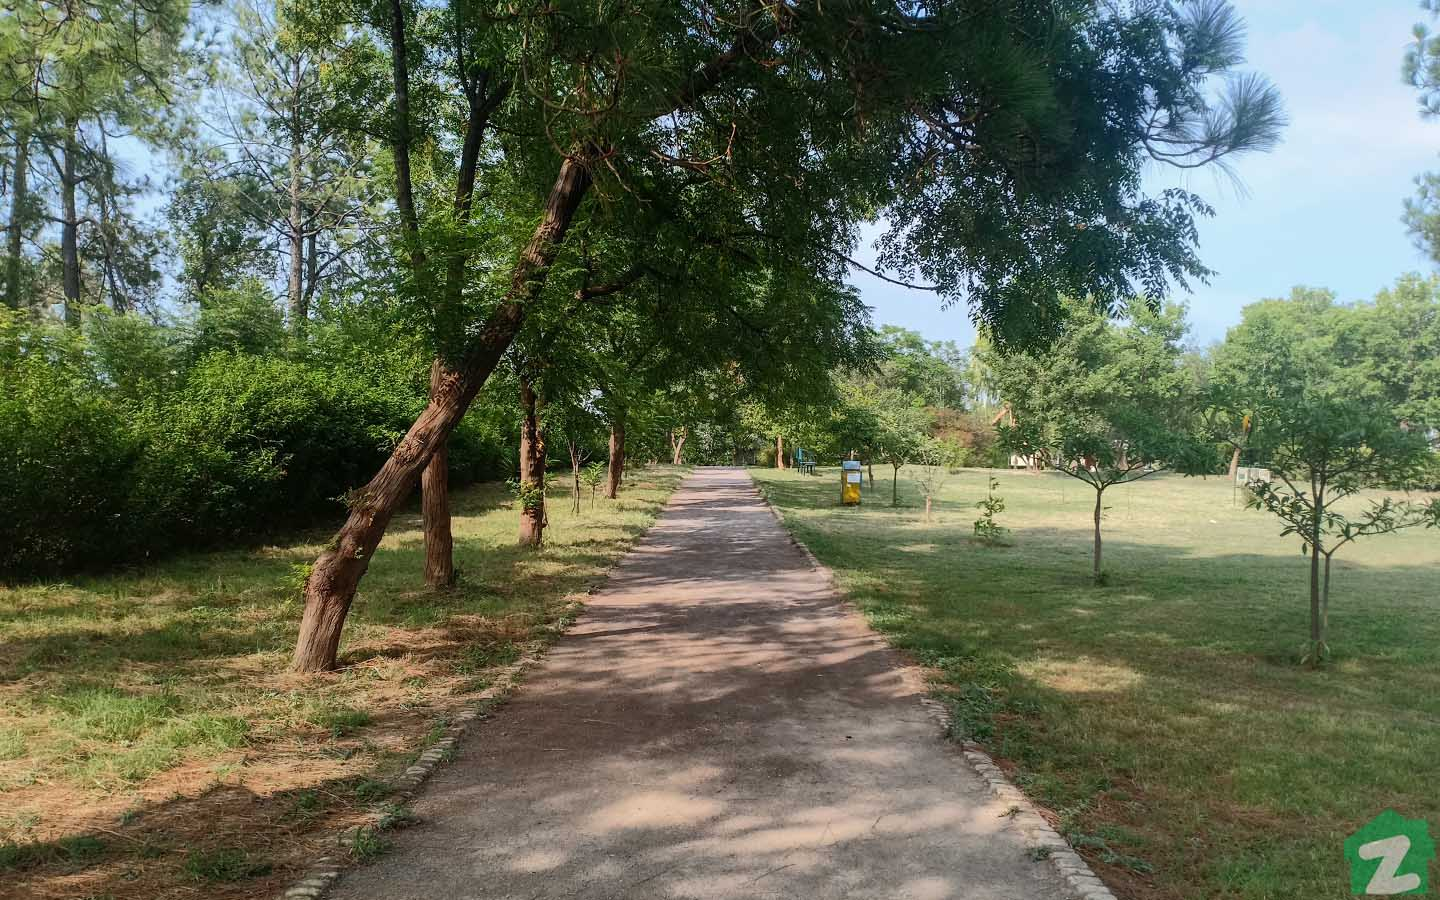 G-10 Islamabad is located in picturesque setting of Islamabad and host many parks